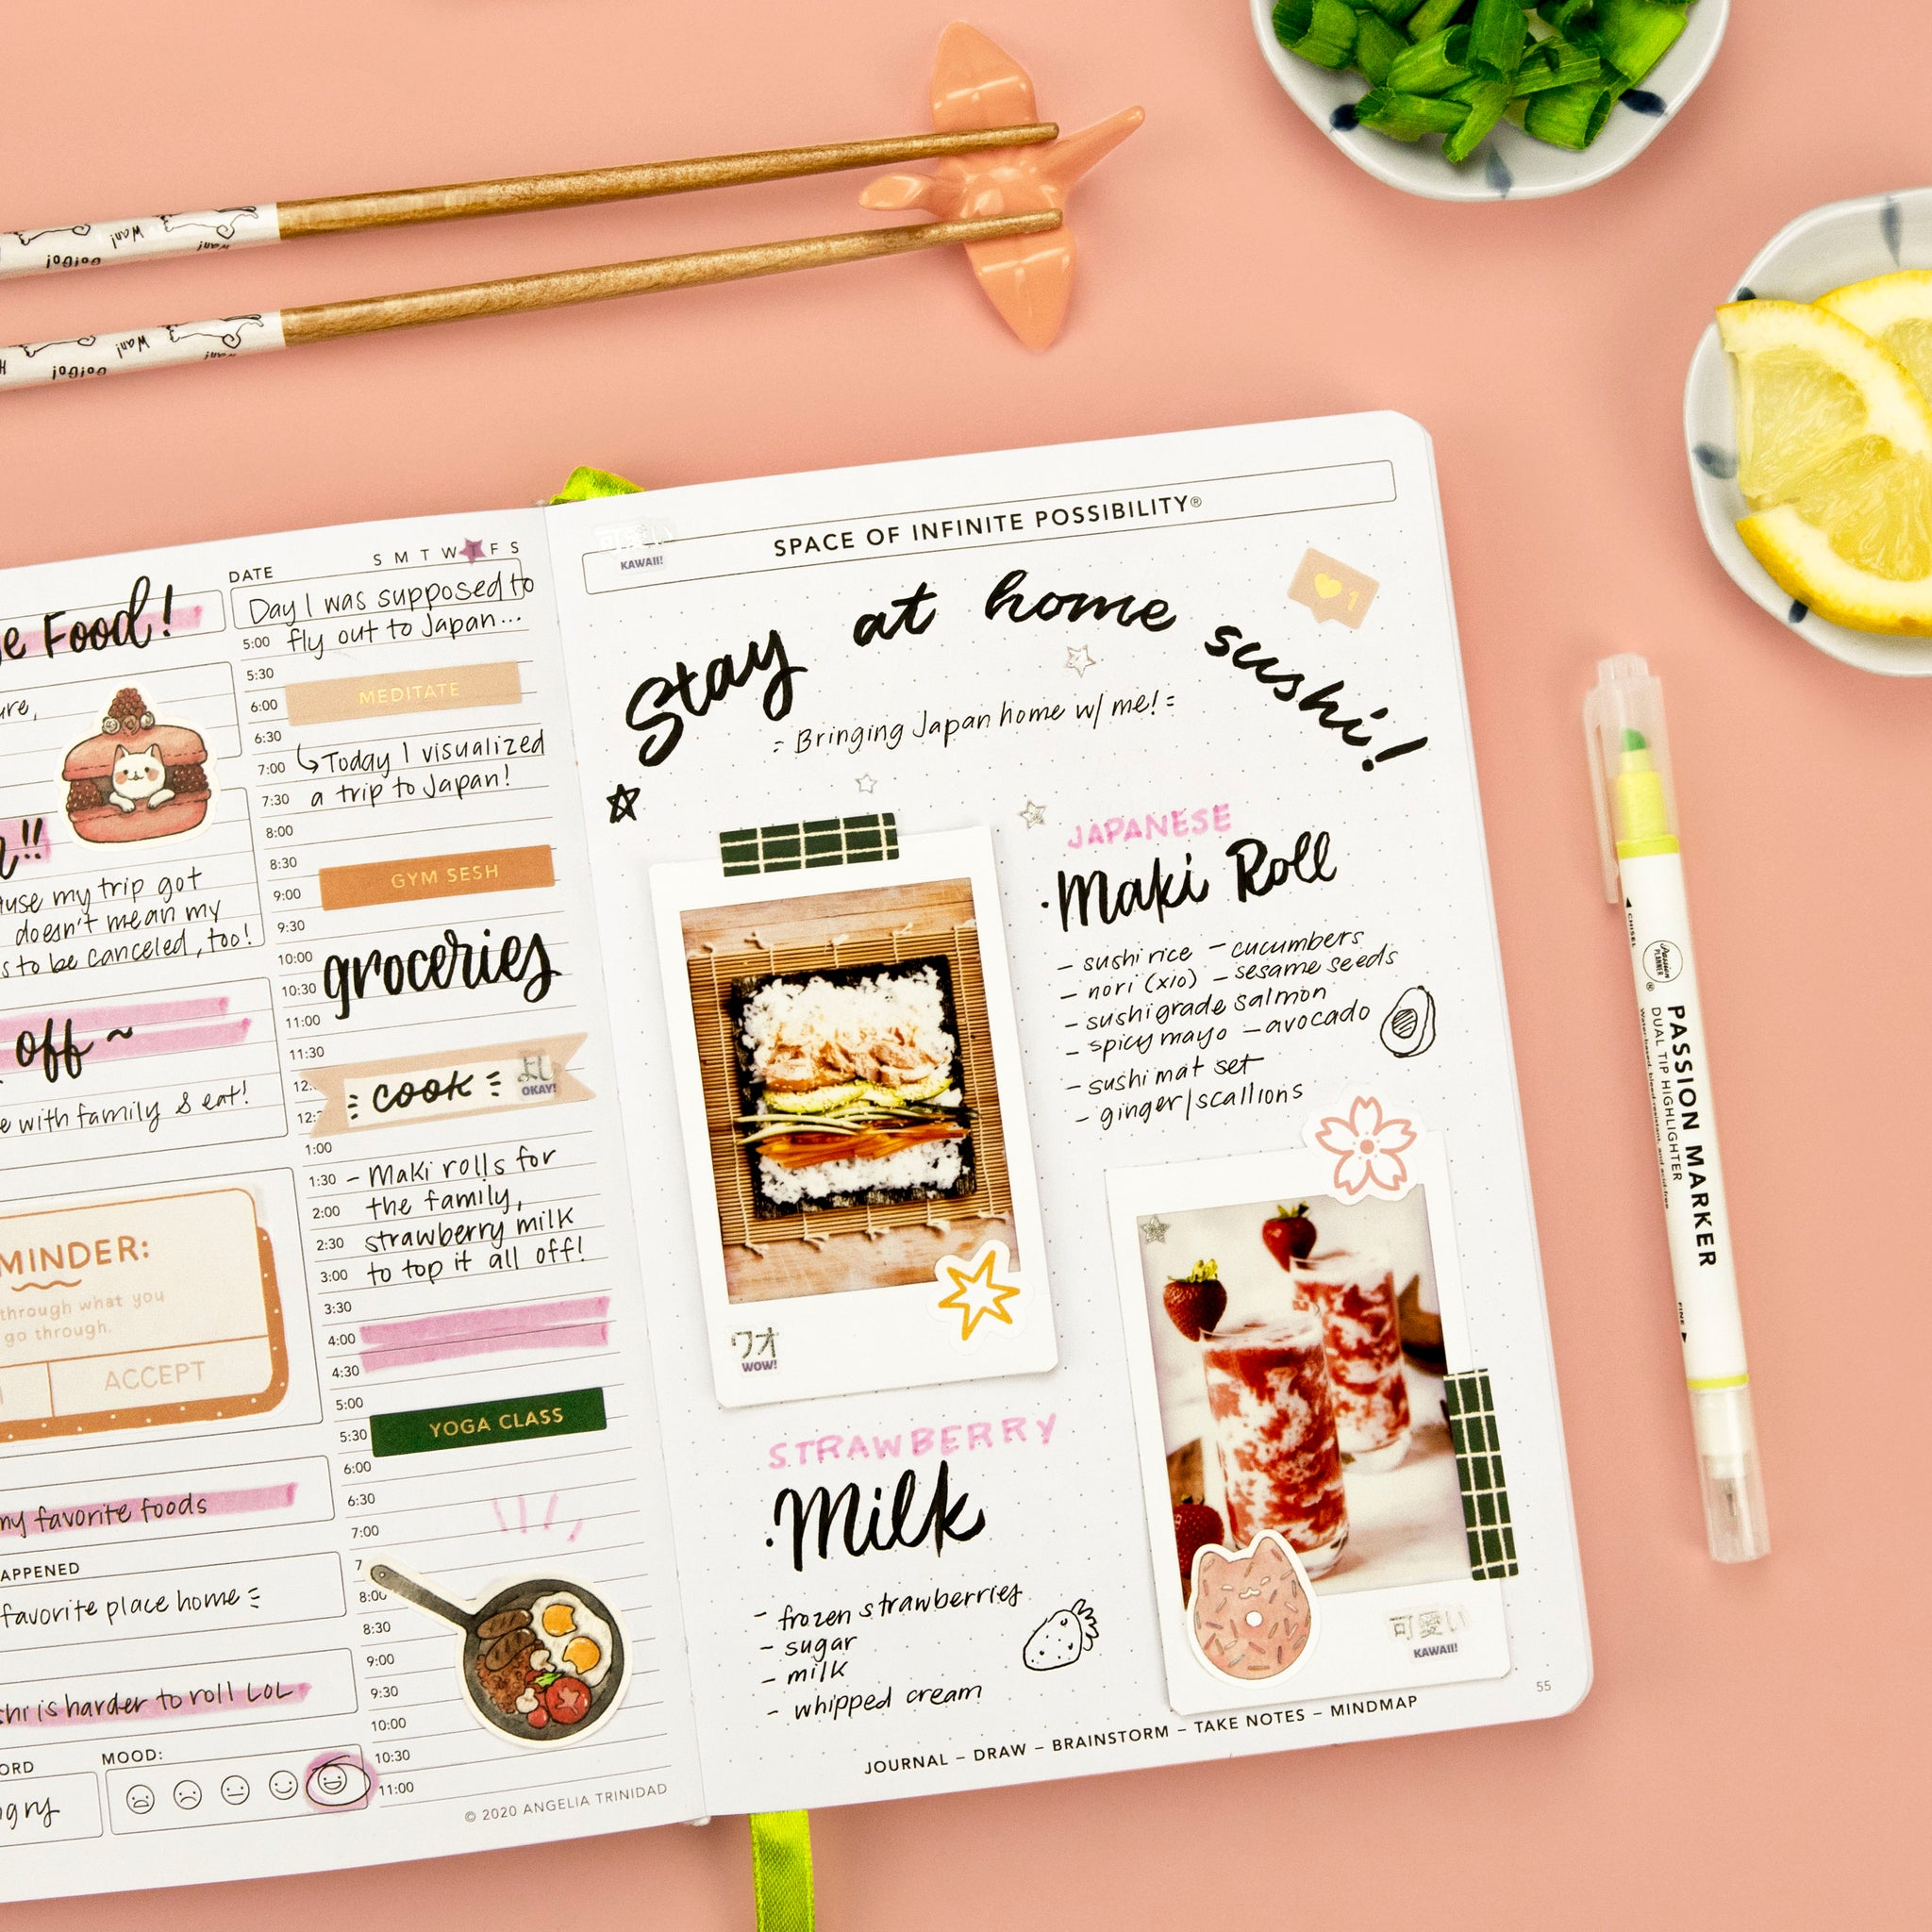 Japan staycation ideas written in Passion Planner Daily against pink background with chopsticks and Passion Marker.